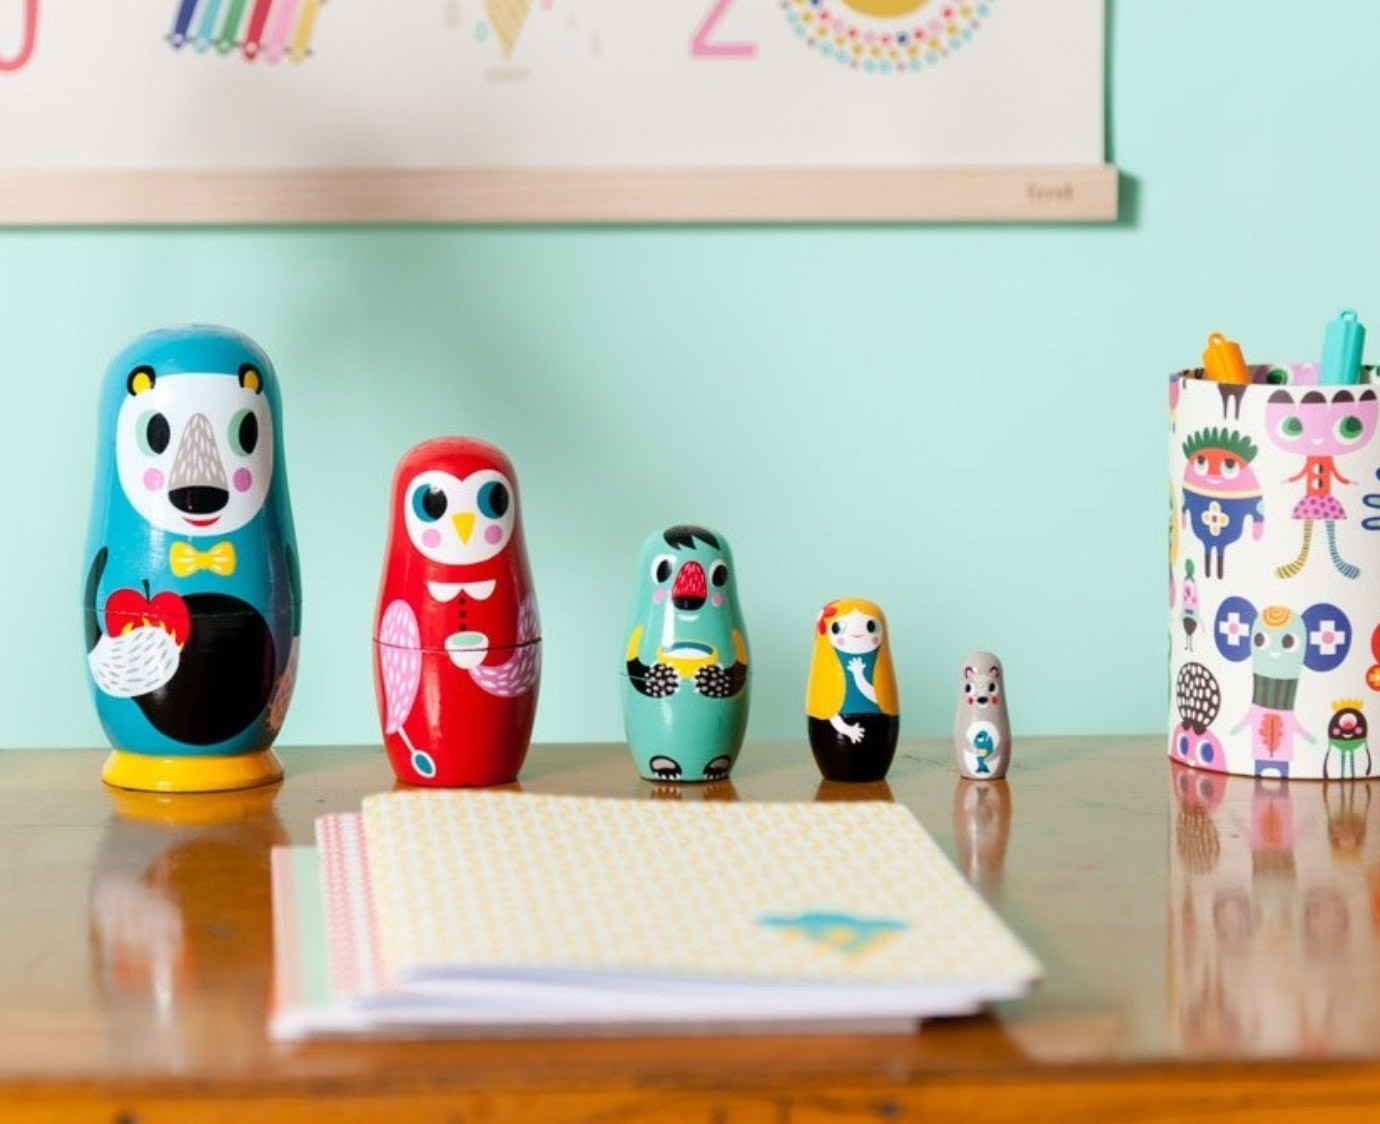 Nesting dolls 'In the woods'